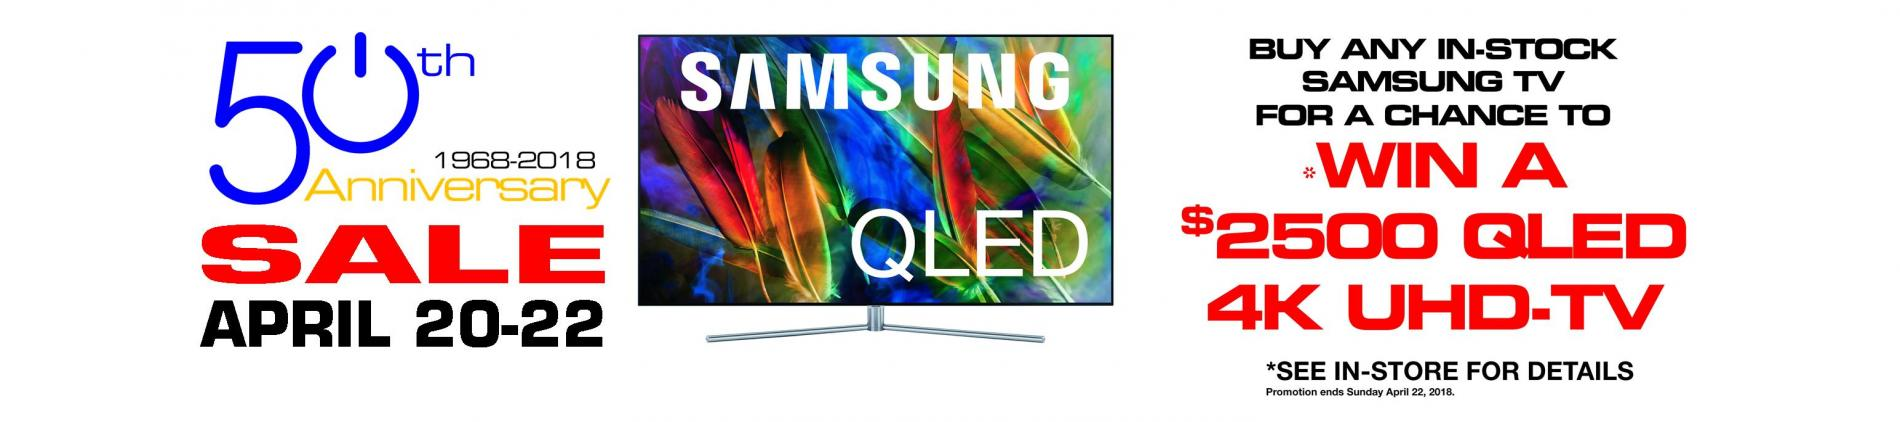 April 20-22 2018 Only. Purchase a in-stock Samsung TV for a chance to win a 55 Samsung QLED 4K HDR UHD-TV